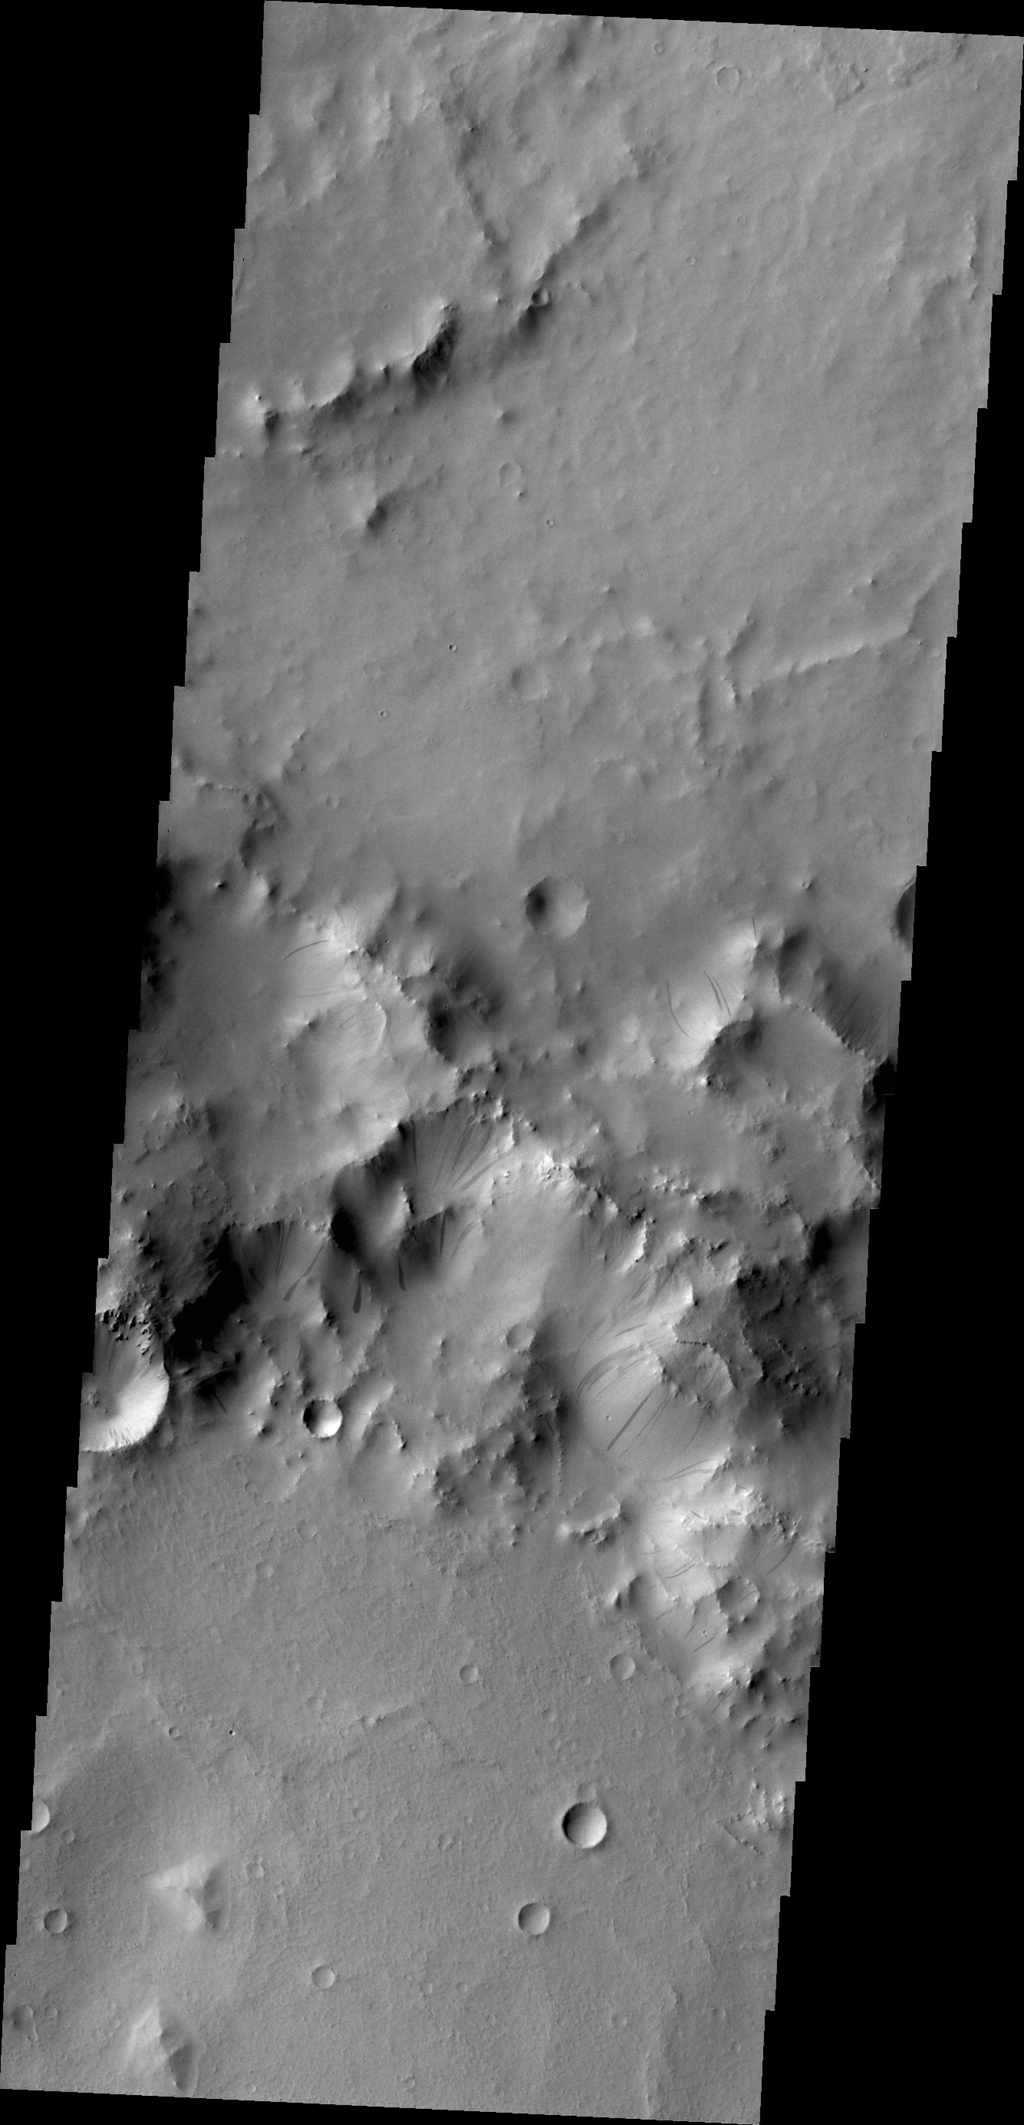 Gravity driven slope modification creates the dark marks on the crater rim in this unnamed crater in Terra Sabaea as seen by NASA's 2001 Mars Odyssey spacecraft.